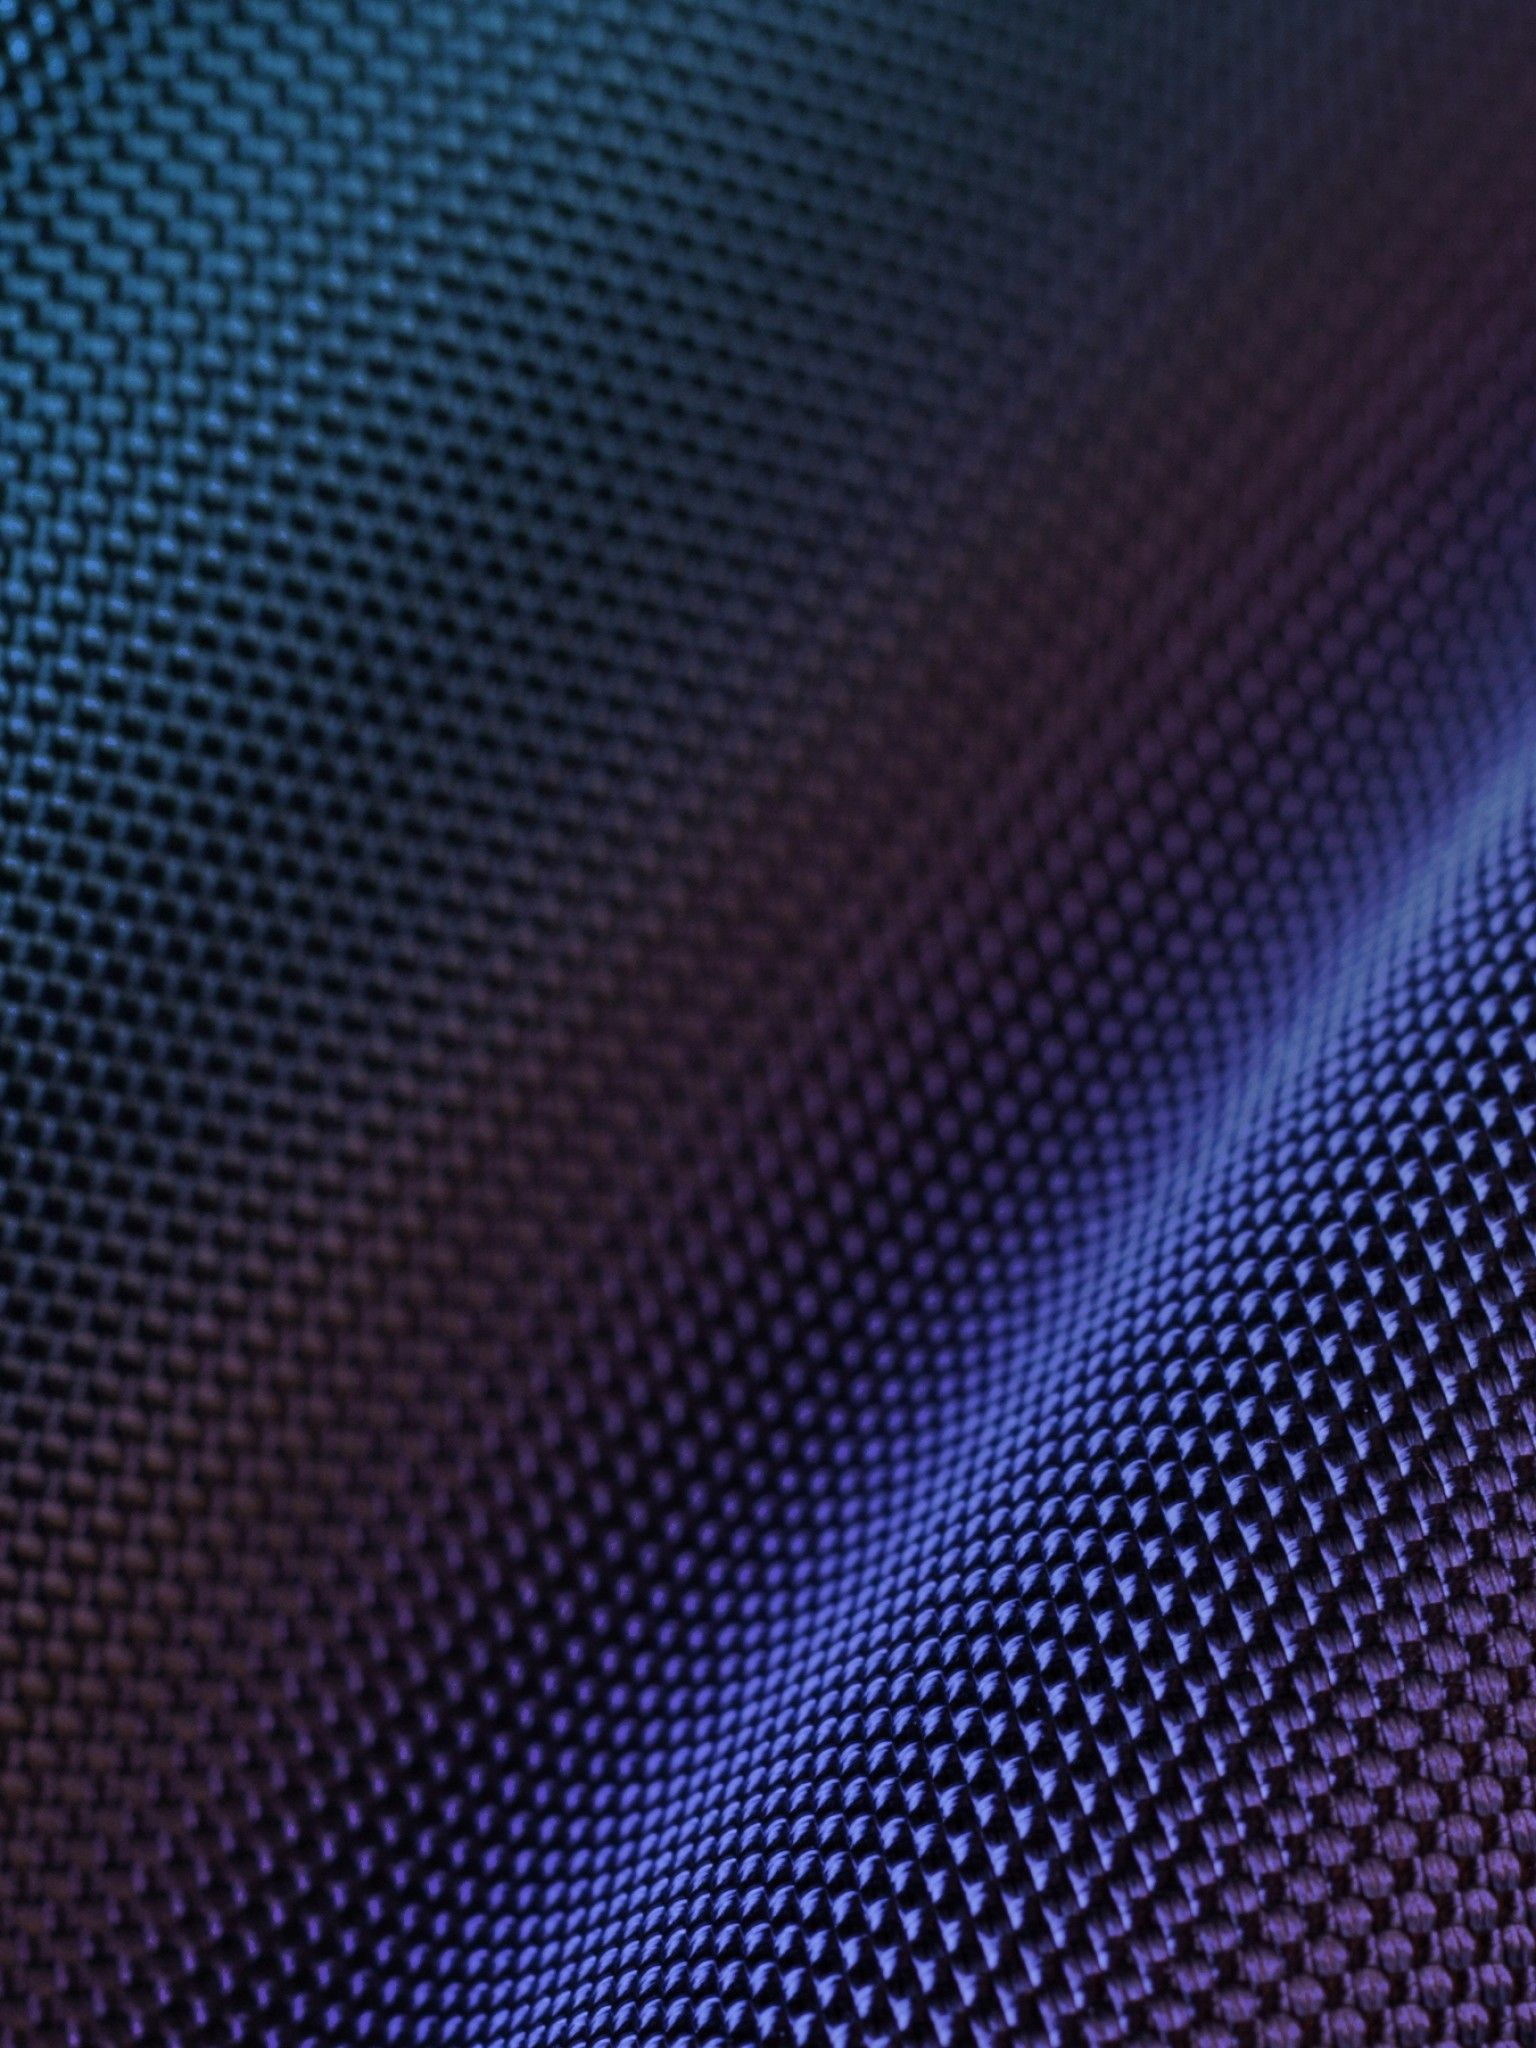 1536x2048 Download 1536x2048 Carbon Fiber, Wave Wallpapers for Apple iPad Mini ...